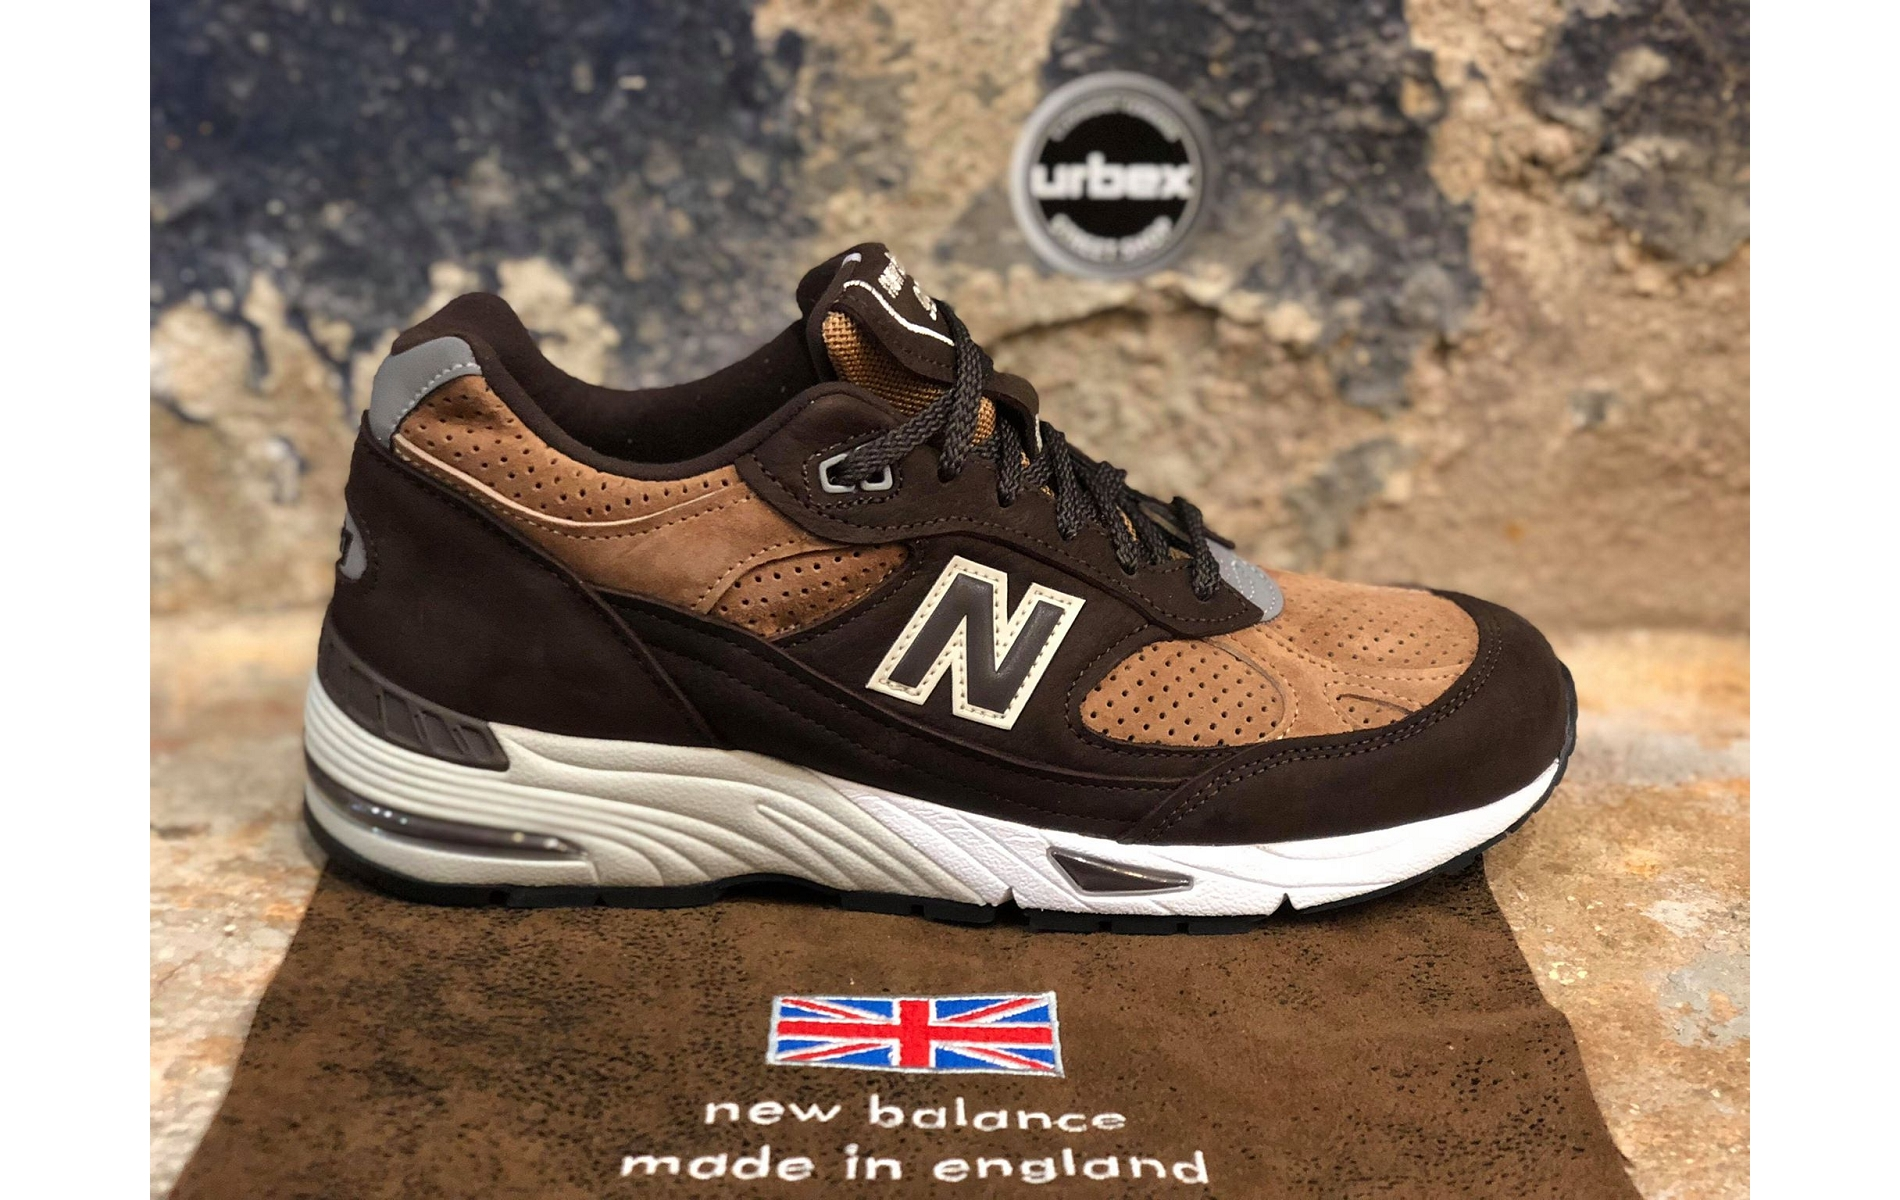 New balance uk usa sneakers m991 dbt marronD026301 1 ... 28eba1ade378